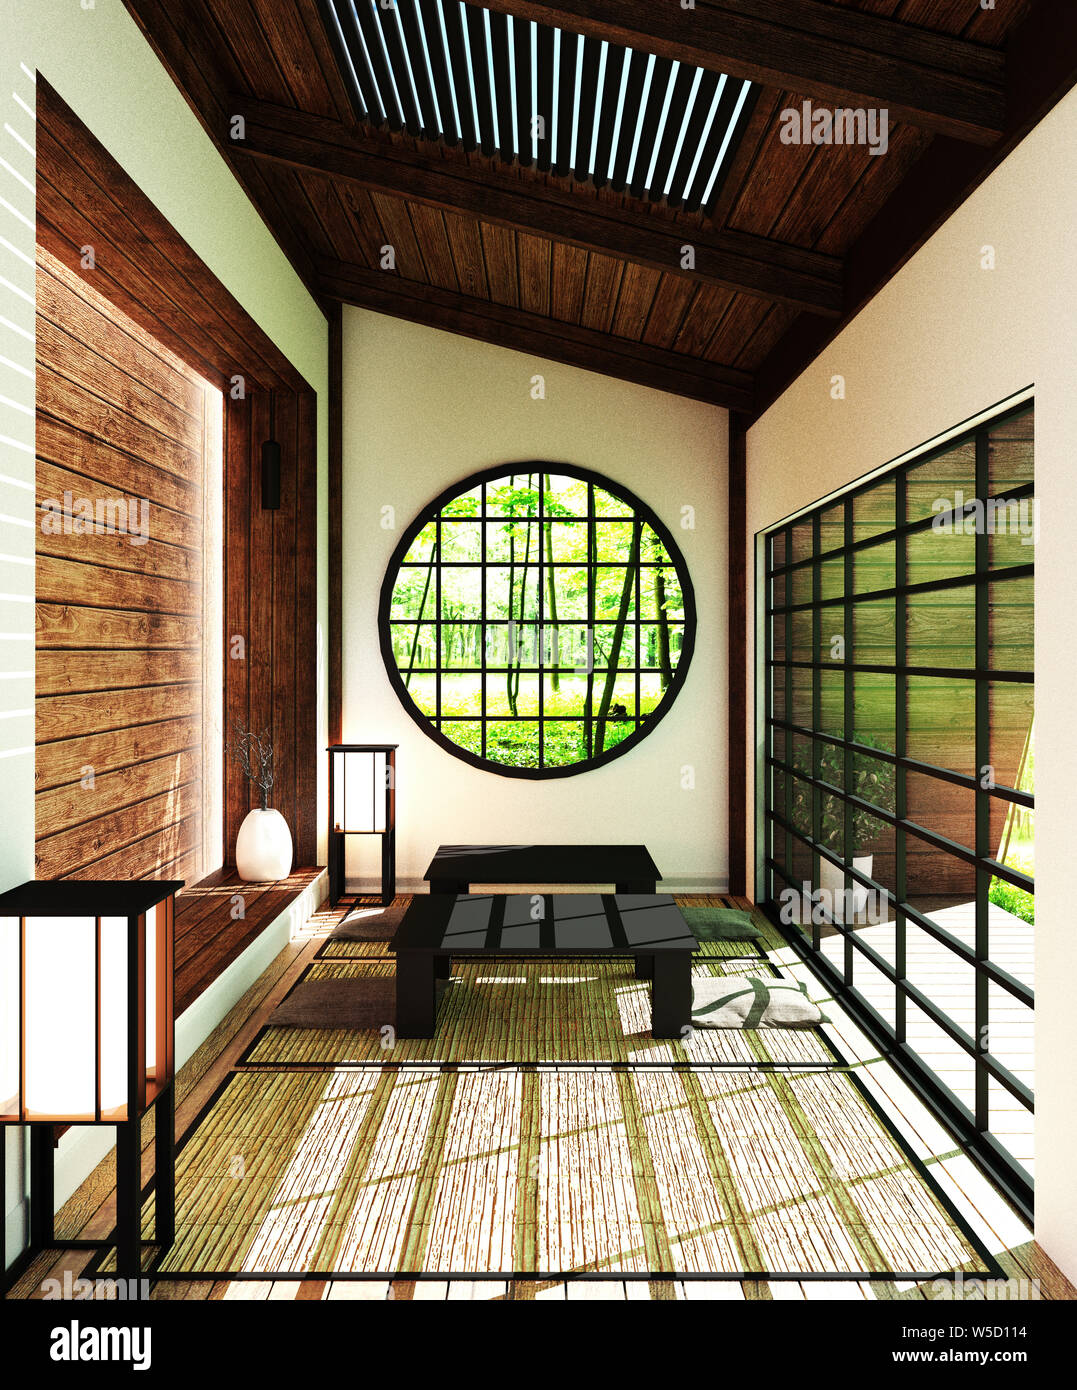 Japan room - modern living room with windows, door, table ...